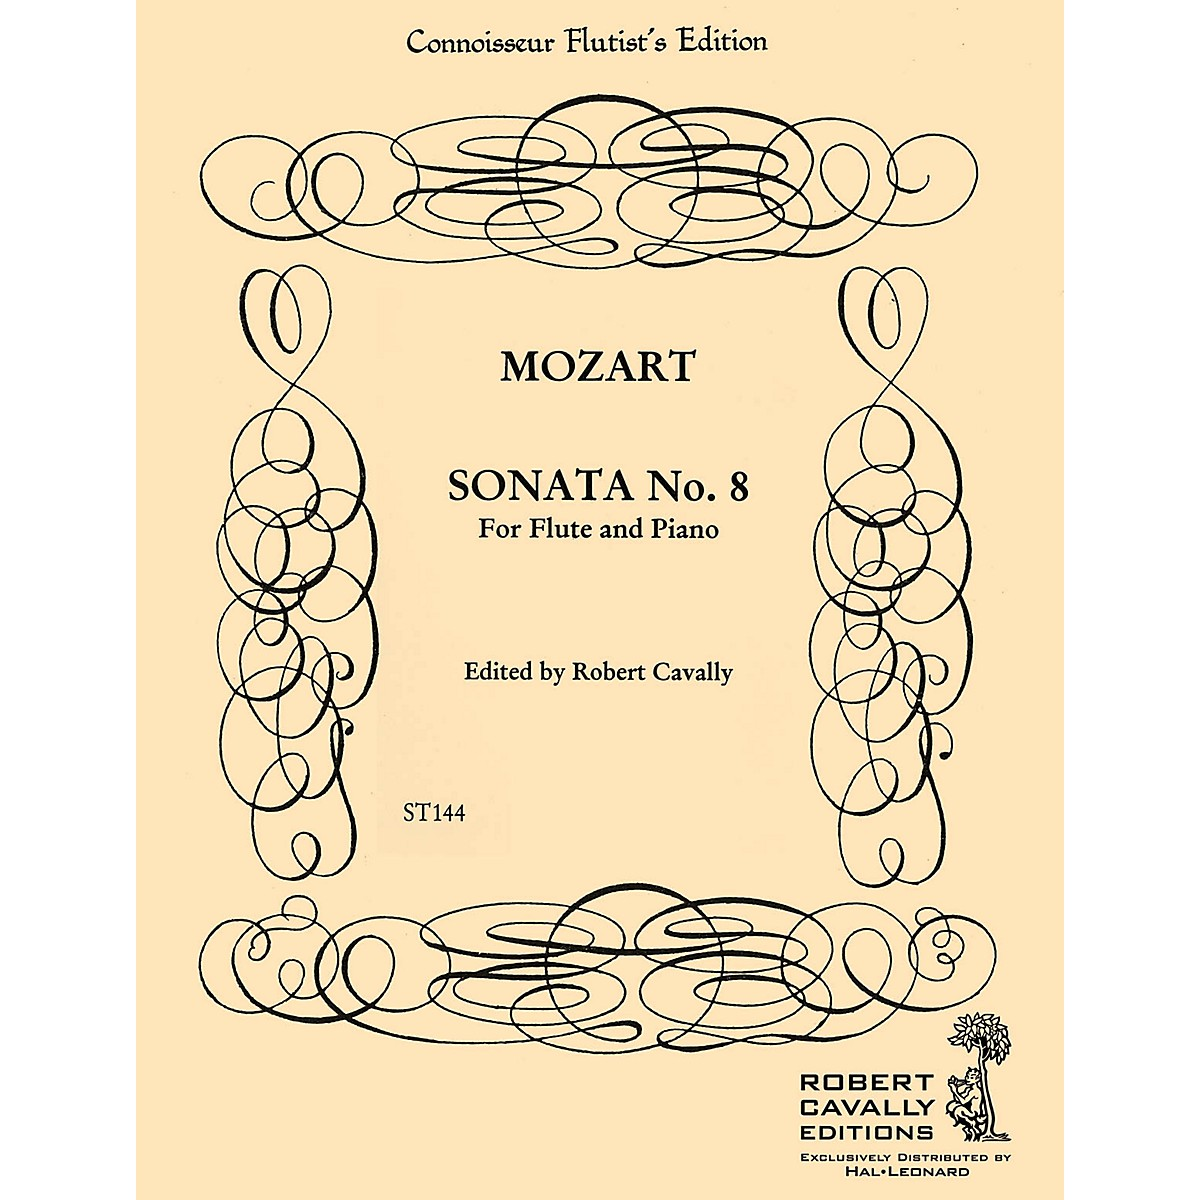 Cavally Editions Sonata No. 8 in F (Connoisseur Flutist's Edition) Robert Cavally Editions Series by Robert Cavally